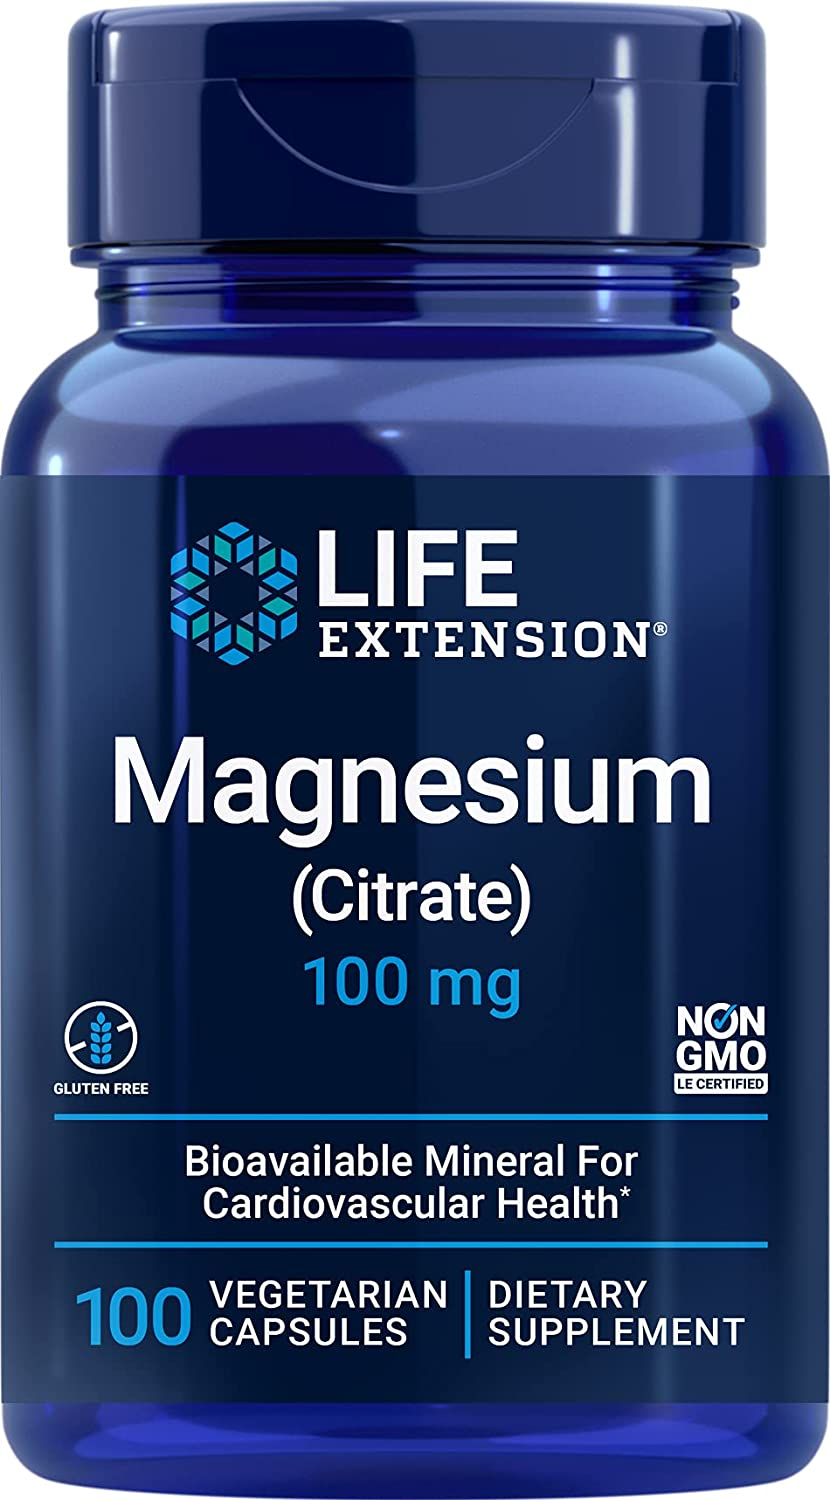 Life Extension Magnesium 40% OFF Cheap Sale Citrate Complete Free Shipping 100 Blu Capsules Vegetarian mg